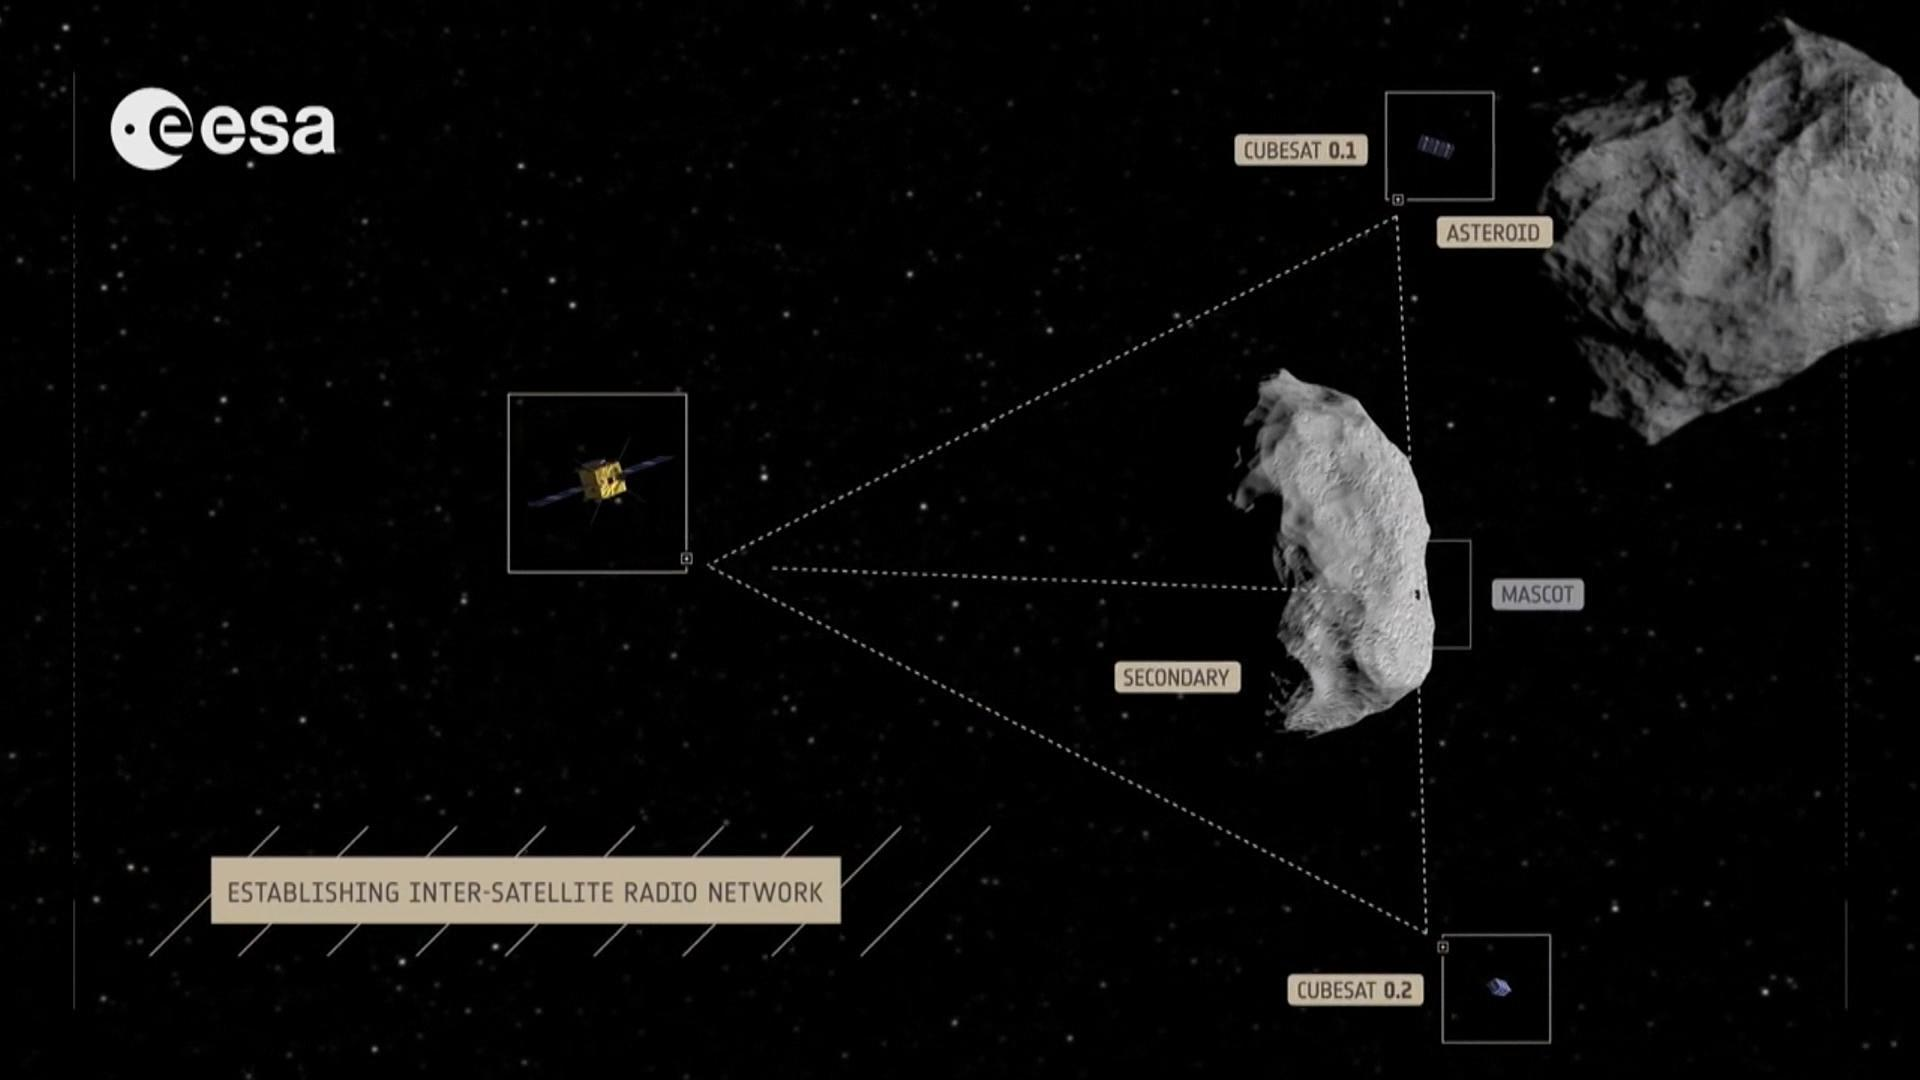 asteroid heading towards earth in 2017 - photo #26